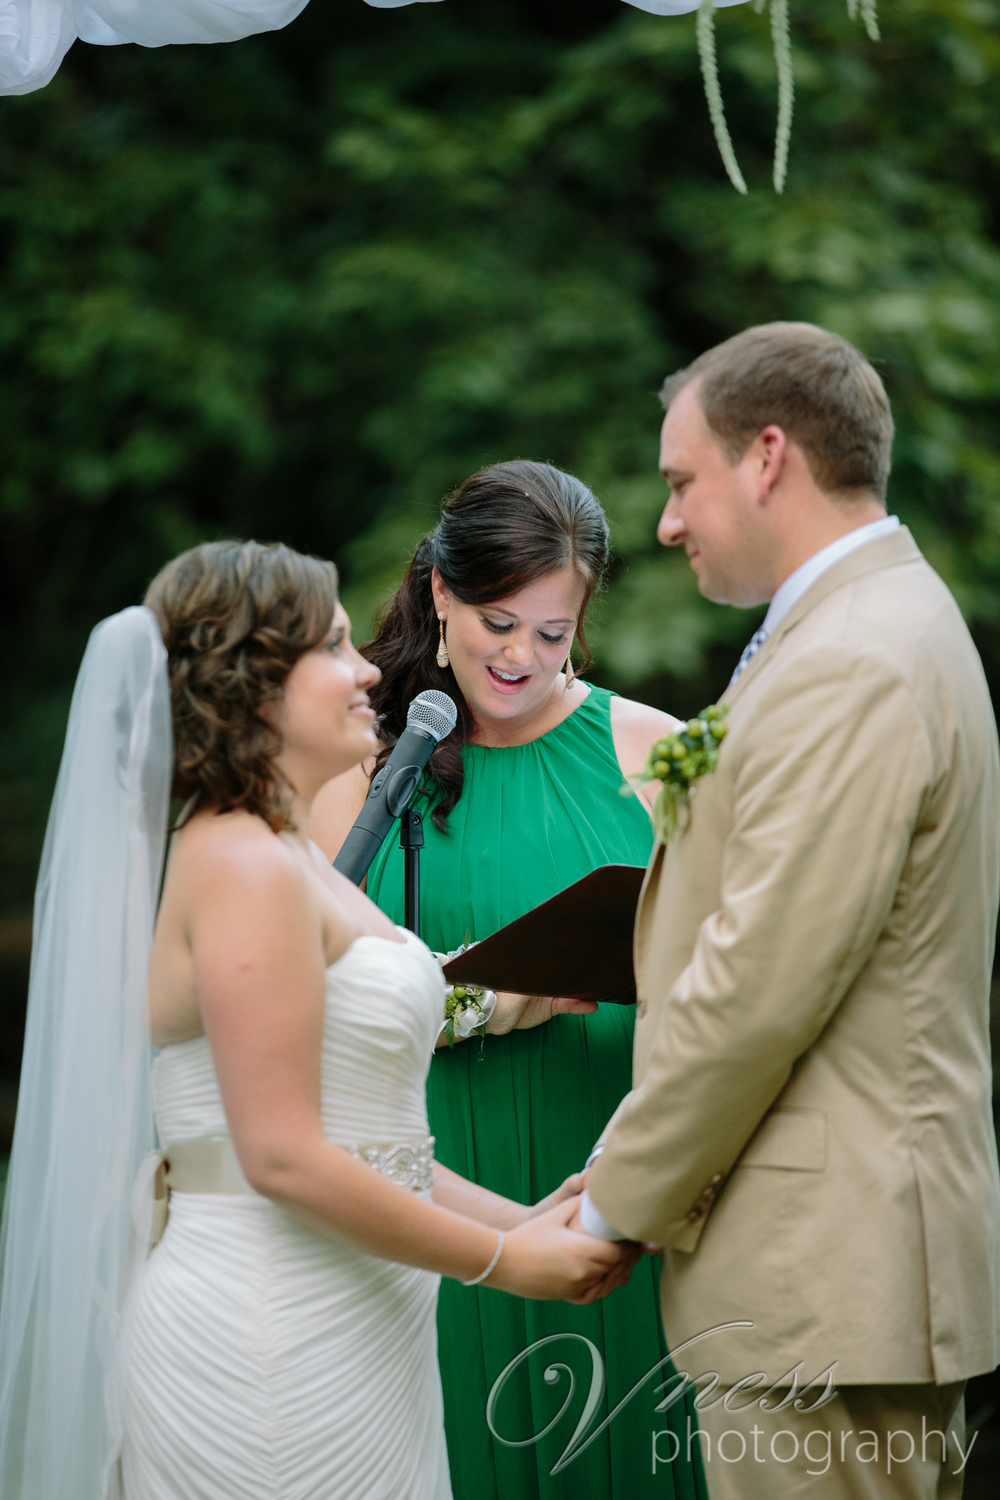 Vnessphotography_Cameron Wedding-117.jpg